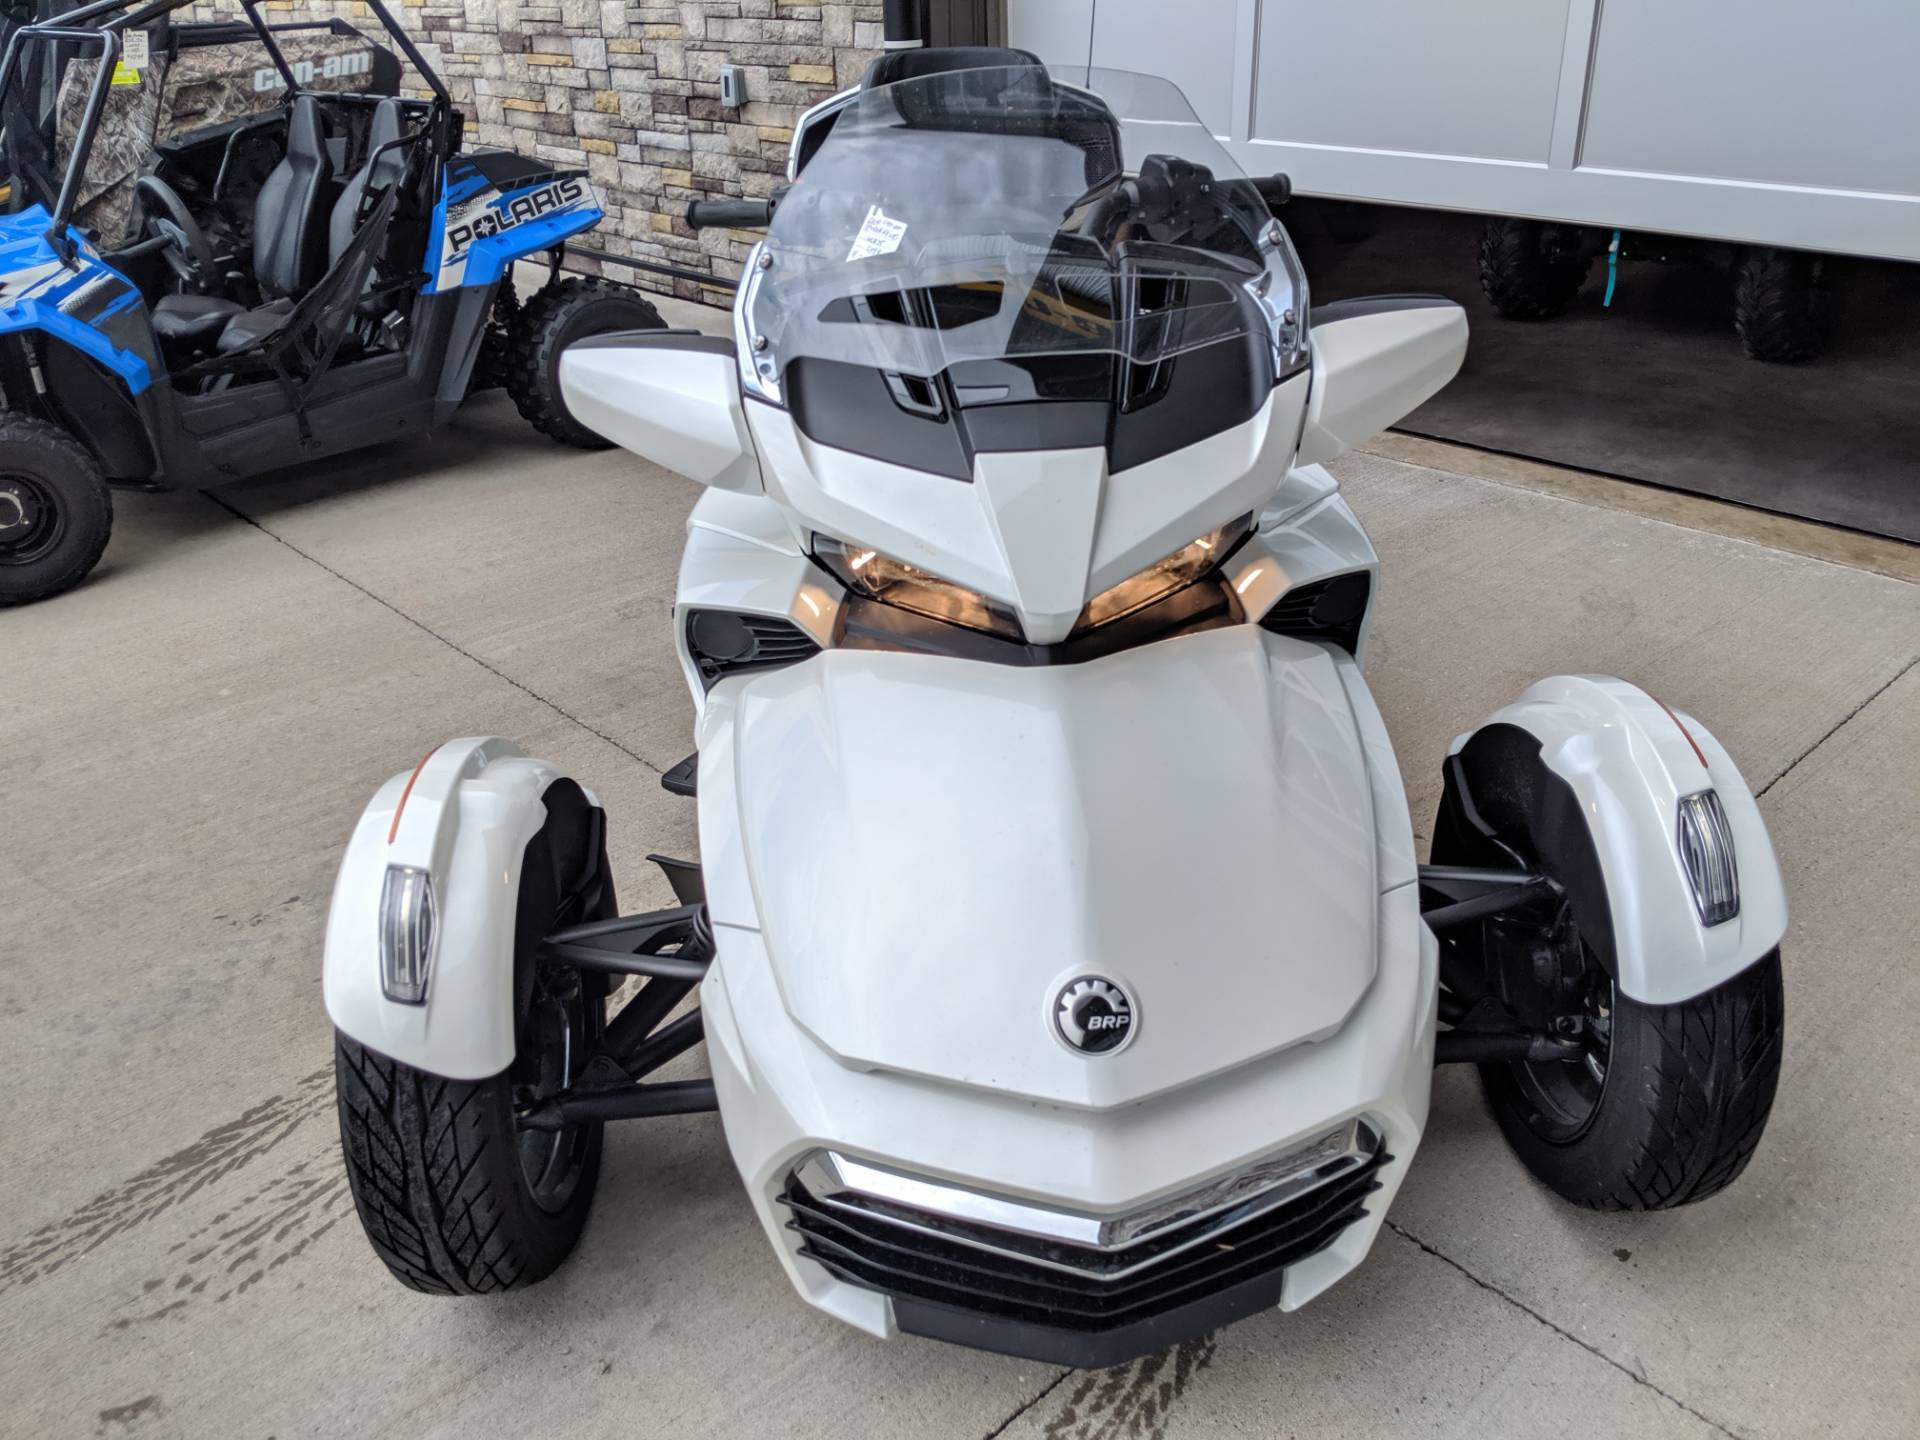 2019 Can-Am Spyder F3 Limited in Rapid City, South Dakota - Photo 3